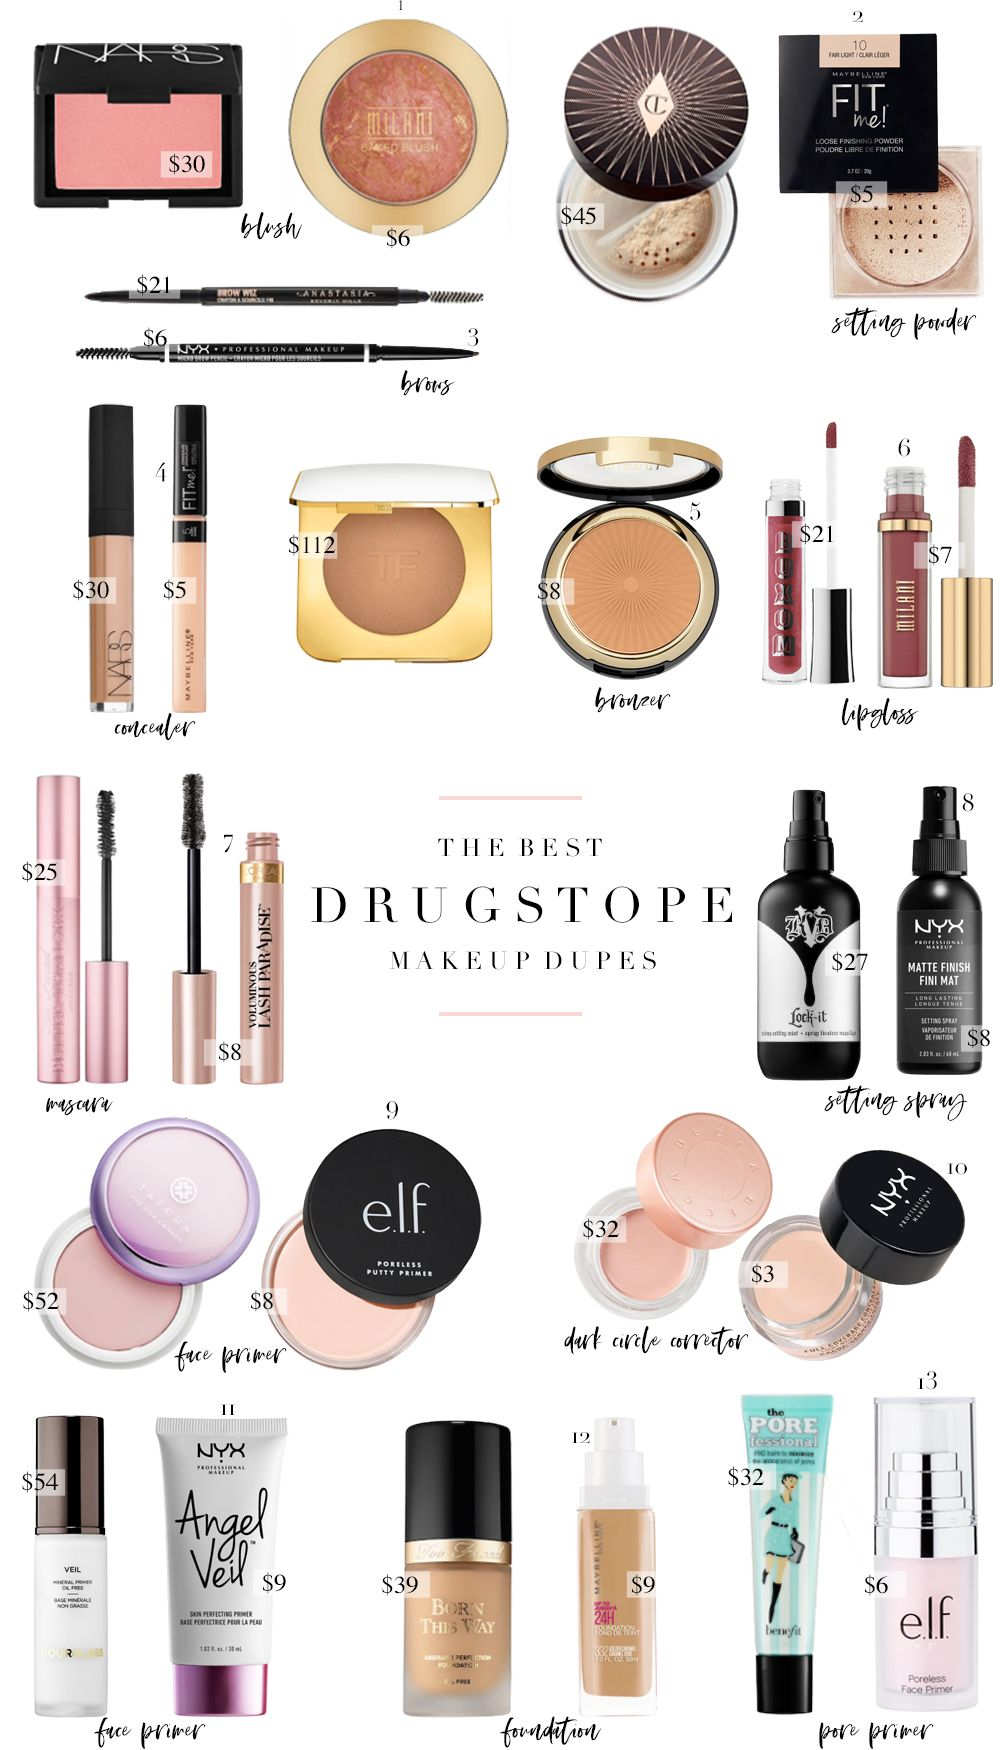 Finding The Best Drugstore Dupes To High End Makeup Products Has Quickly Become A Hobby I M Always Amaze In 2020 Makeup Dupes Best Makeup Dupes Drugstore Makeup Dupes